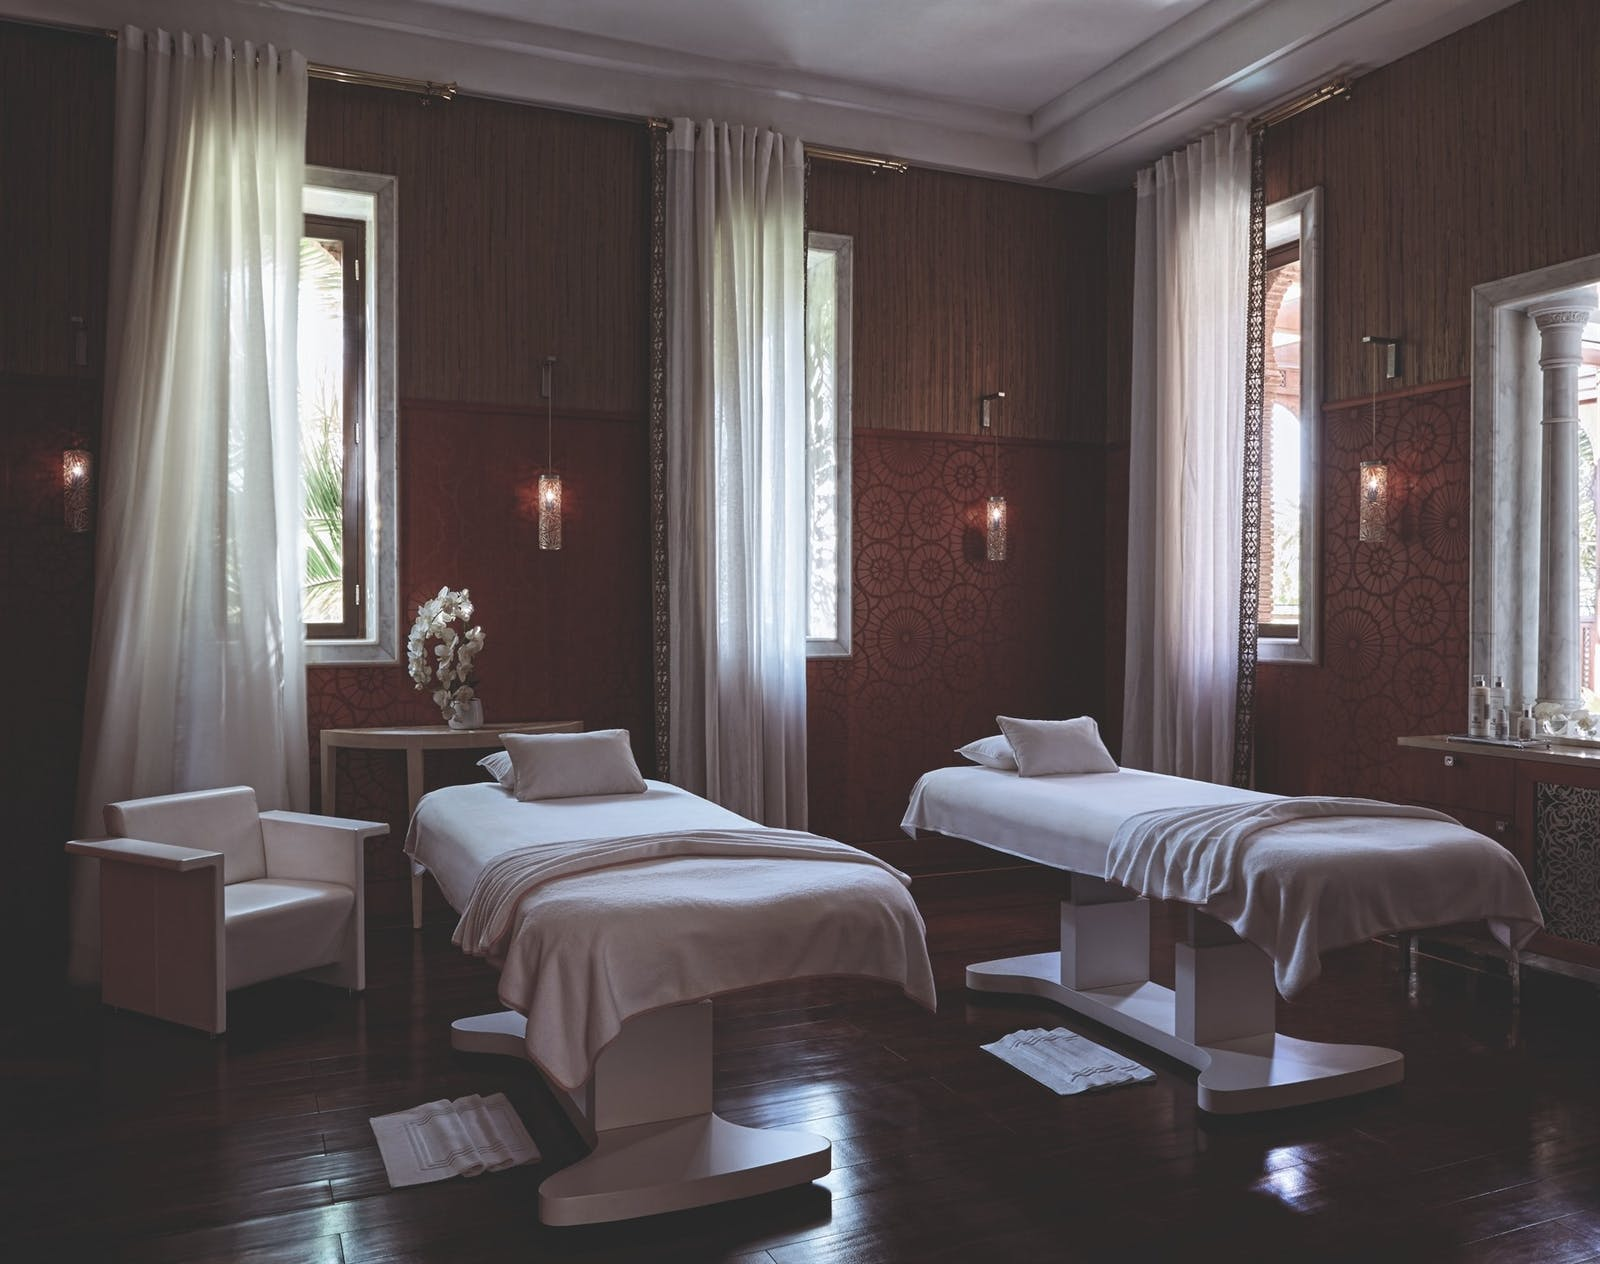 The spa at Royal Mansour, Marrakech